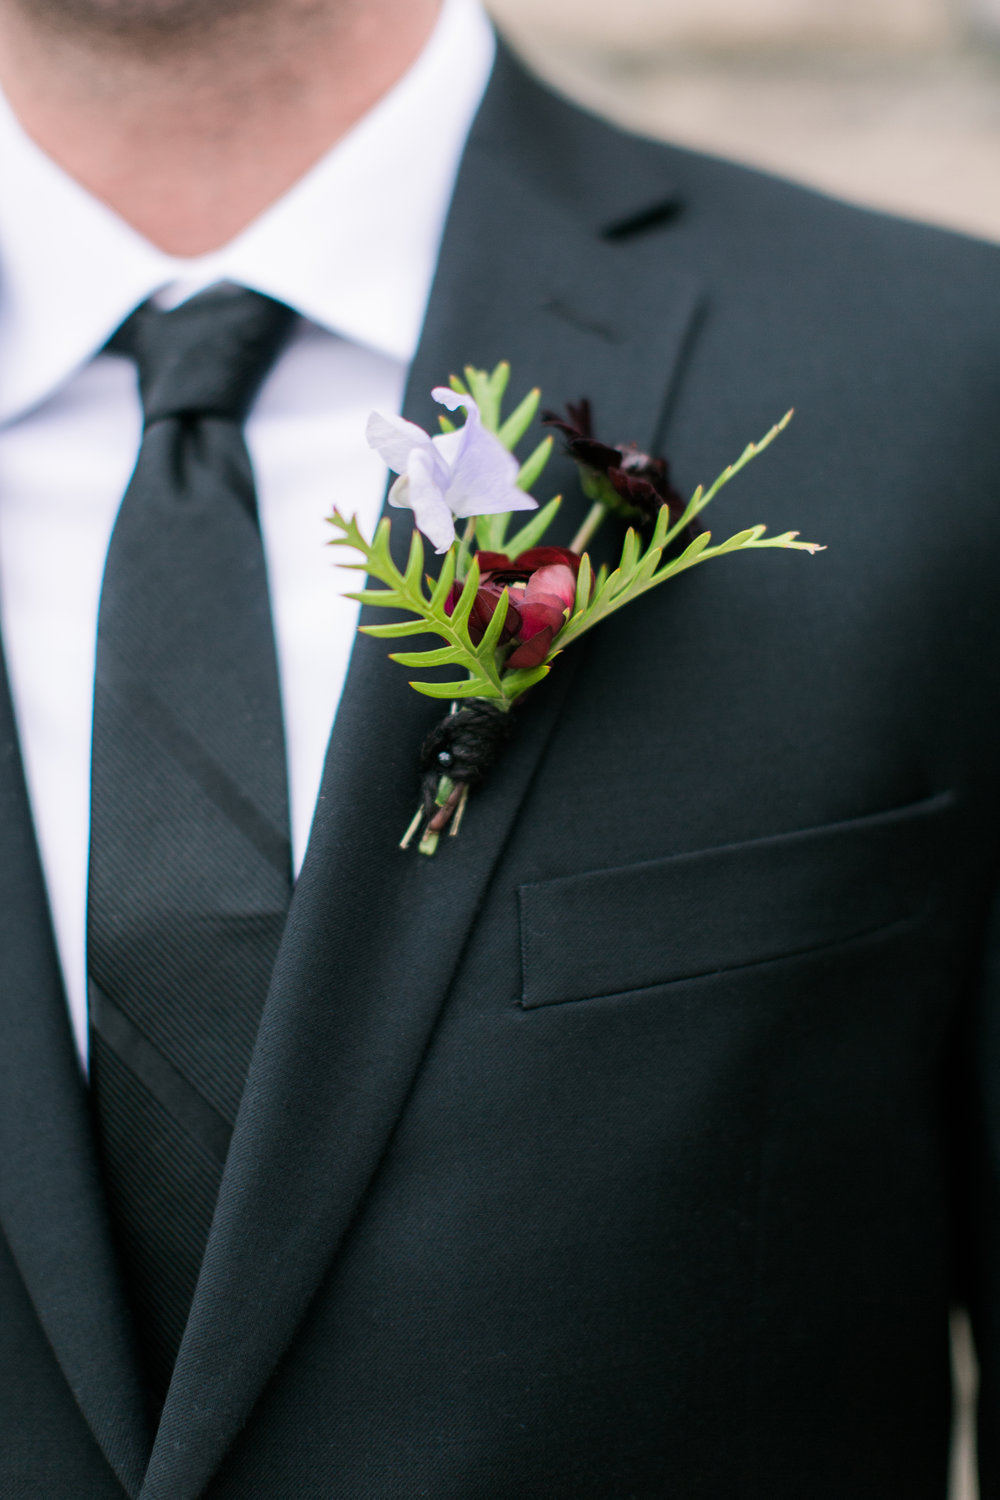 Flowers by Lace and Lilies, formal black tie groom, burgundy and lavender boutonniere - ranunculus